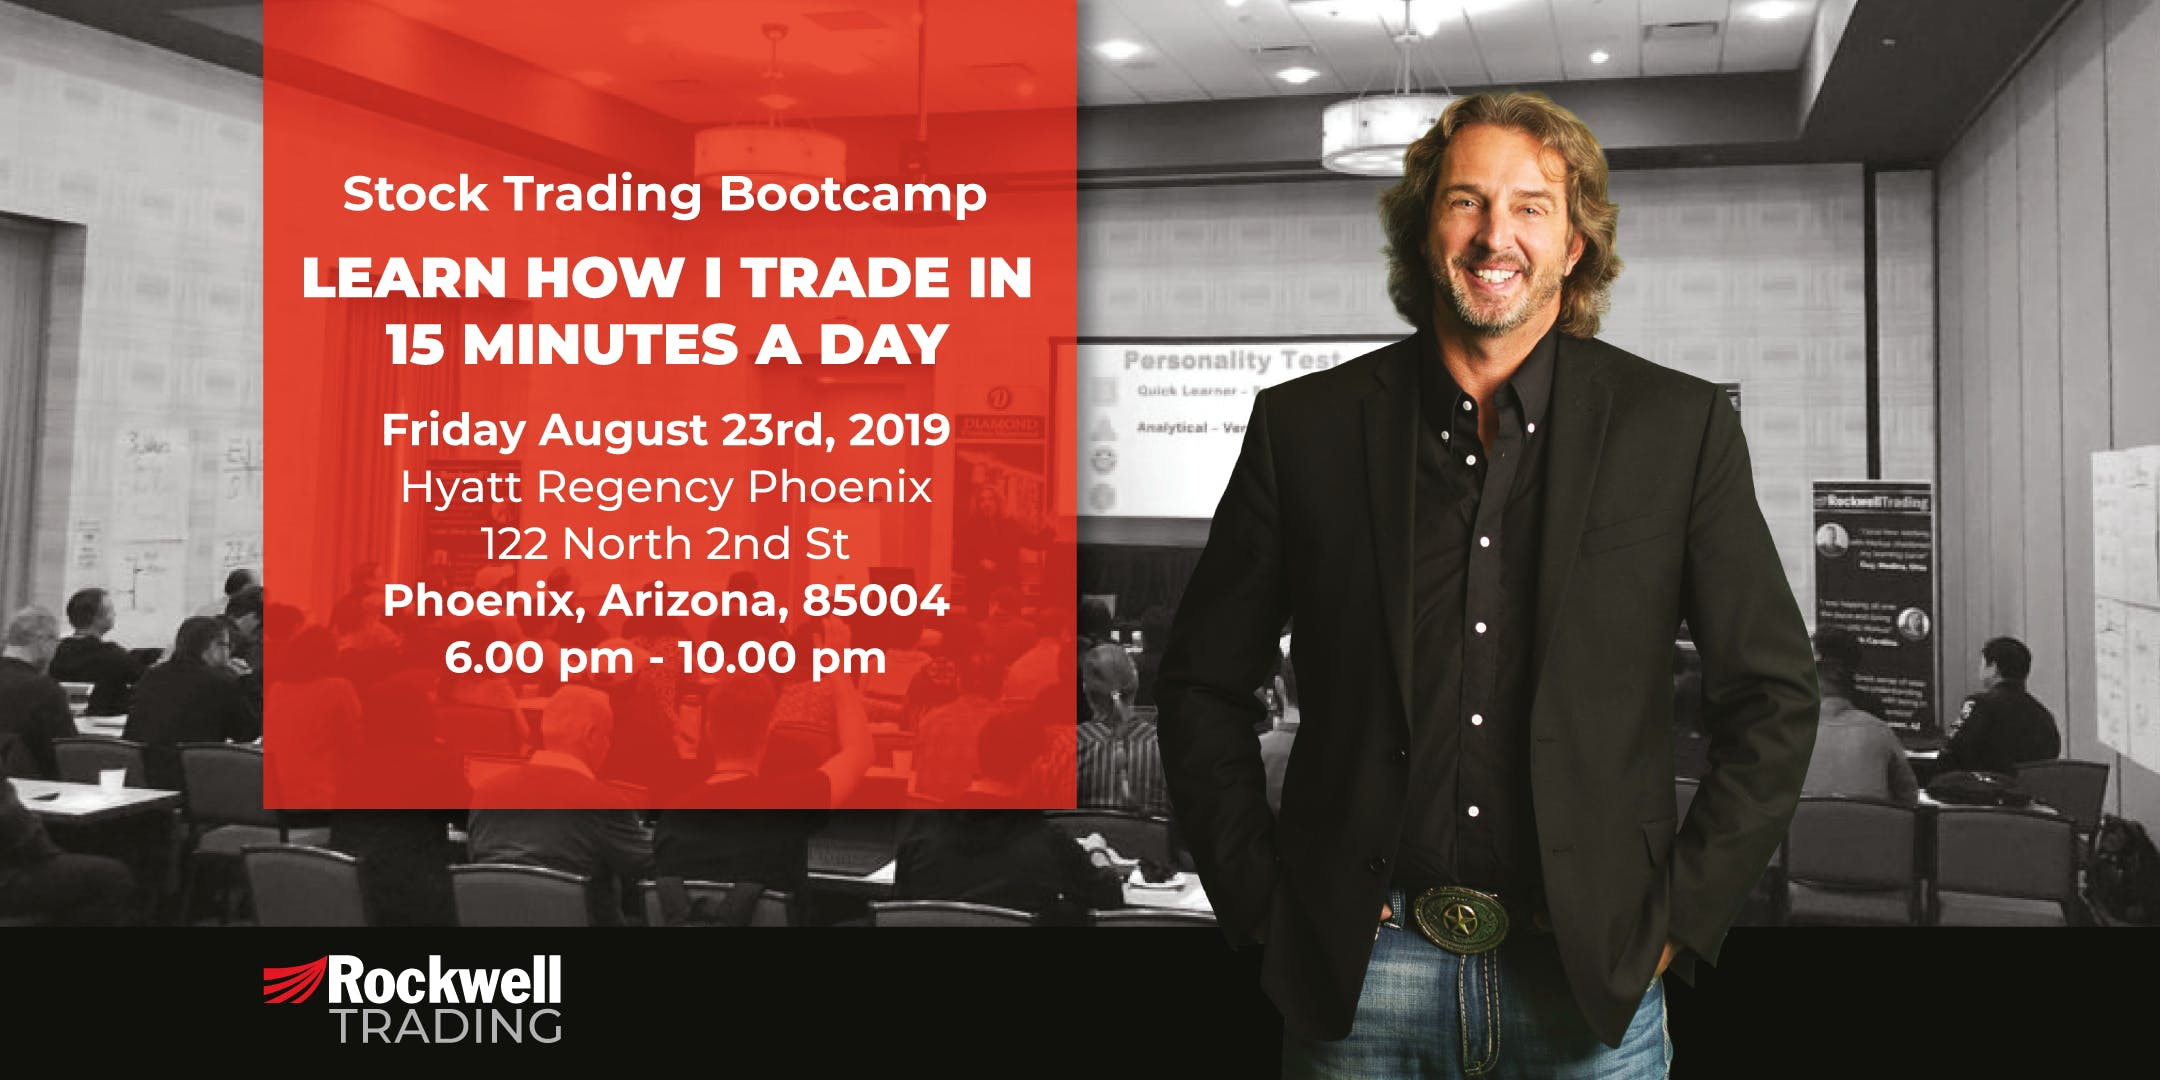 Rockwell Stock Trading Bootcamp - PHOENIX, August 23rd